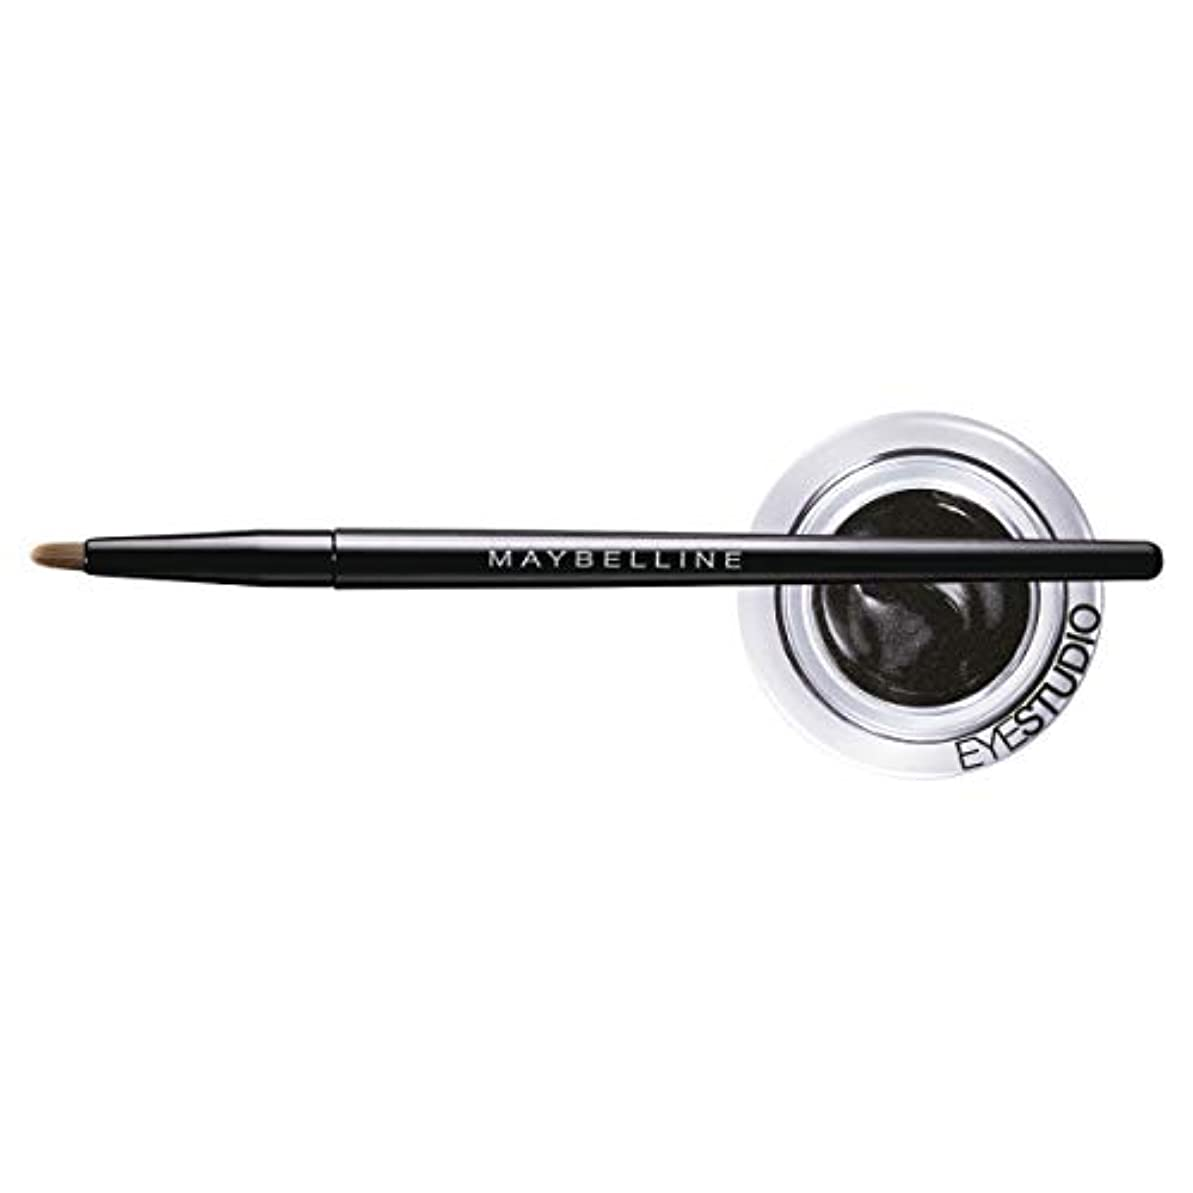 眩惑する軌道把握MAYBELLINE Eye Studio Lasting Drama Gel Eyeliner - Blackest Black 950 (並行輸入品)